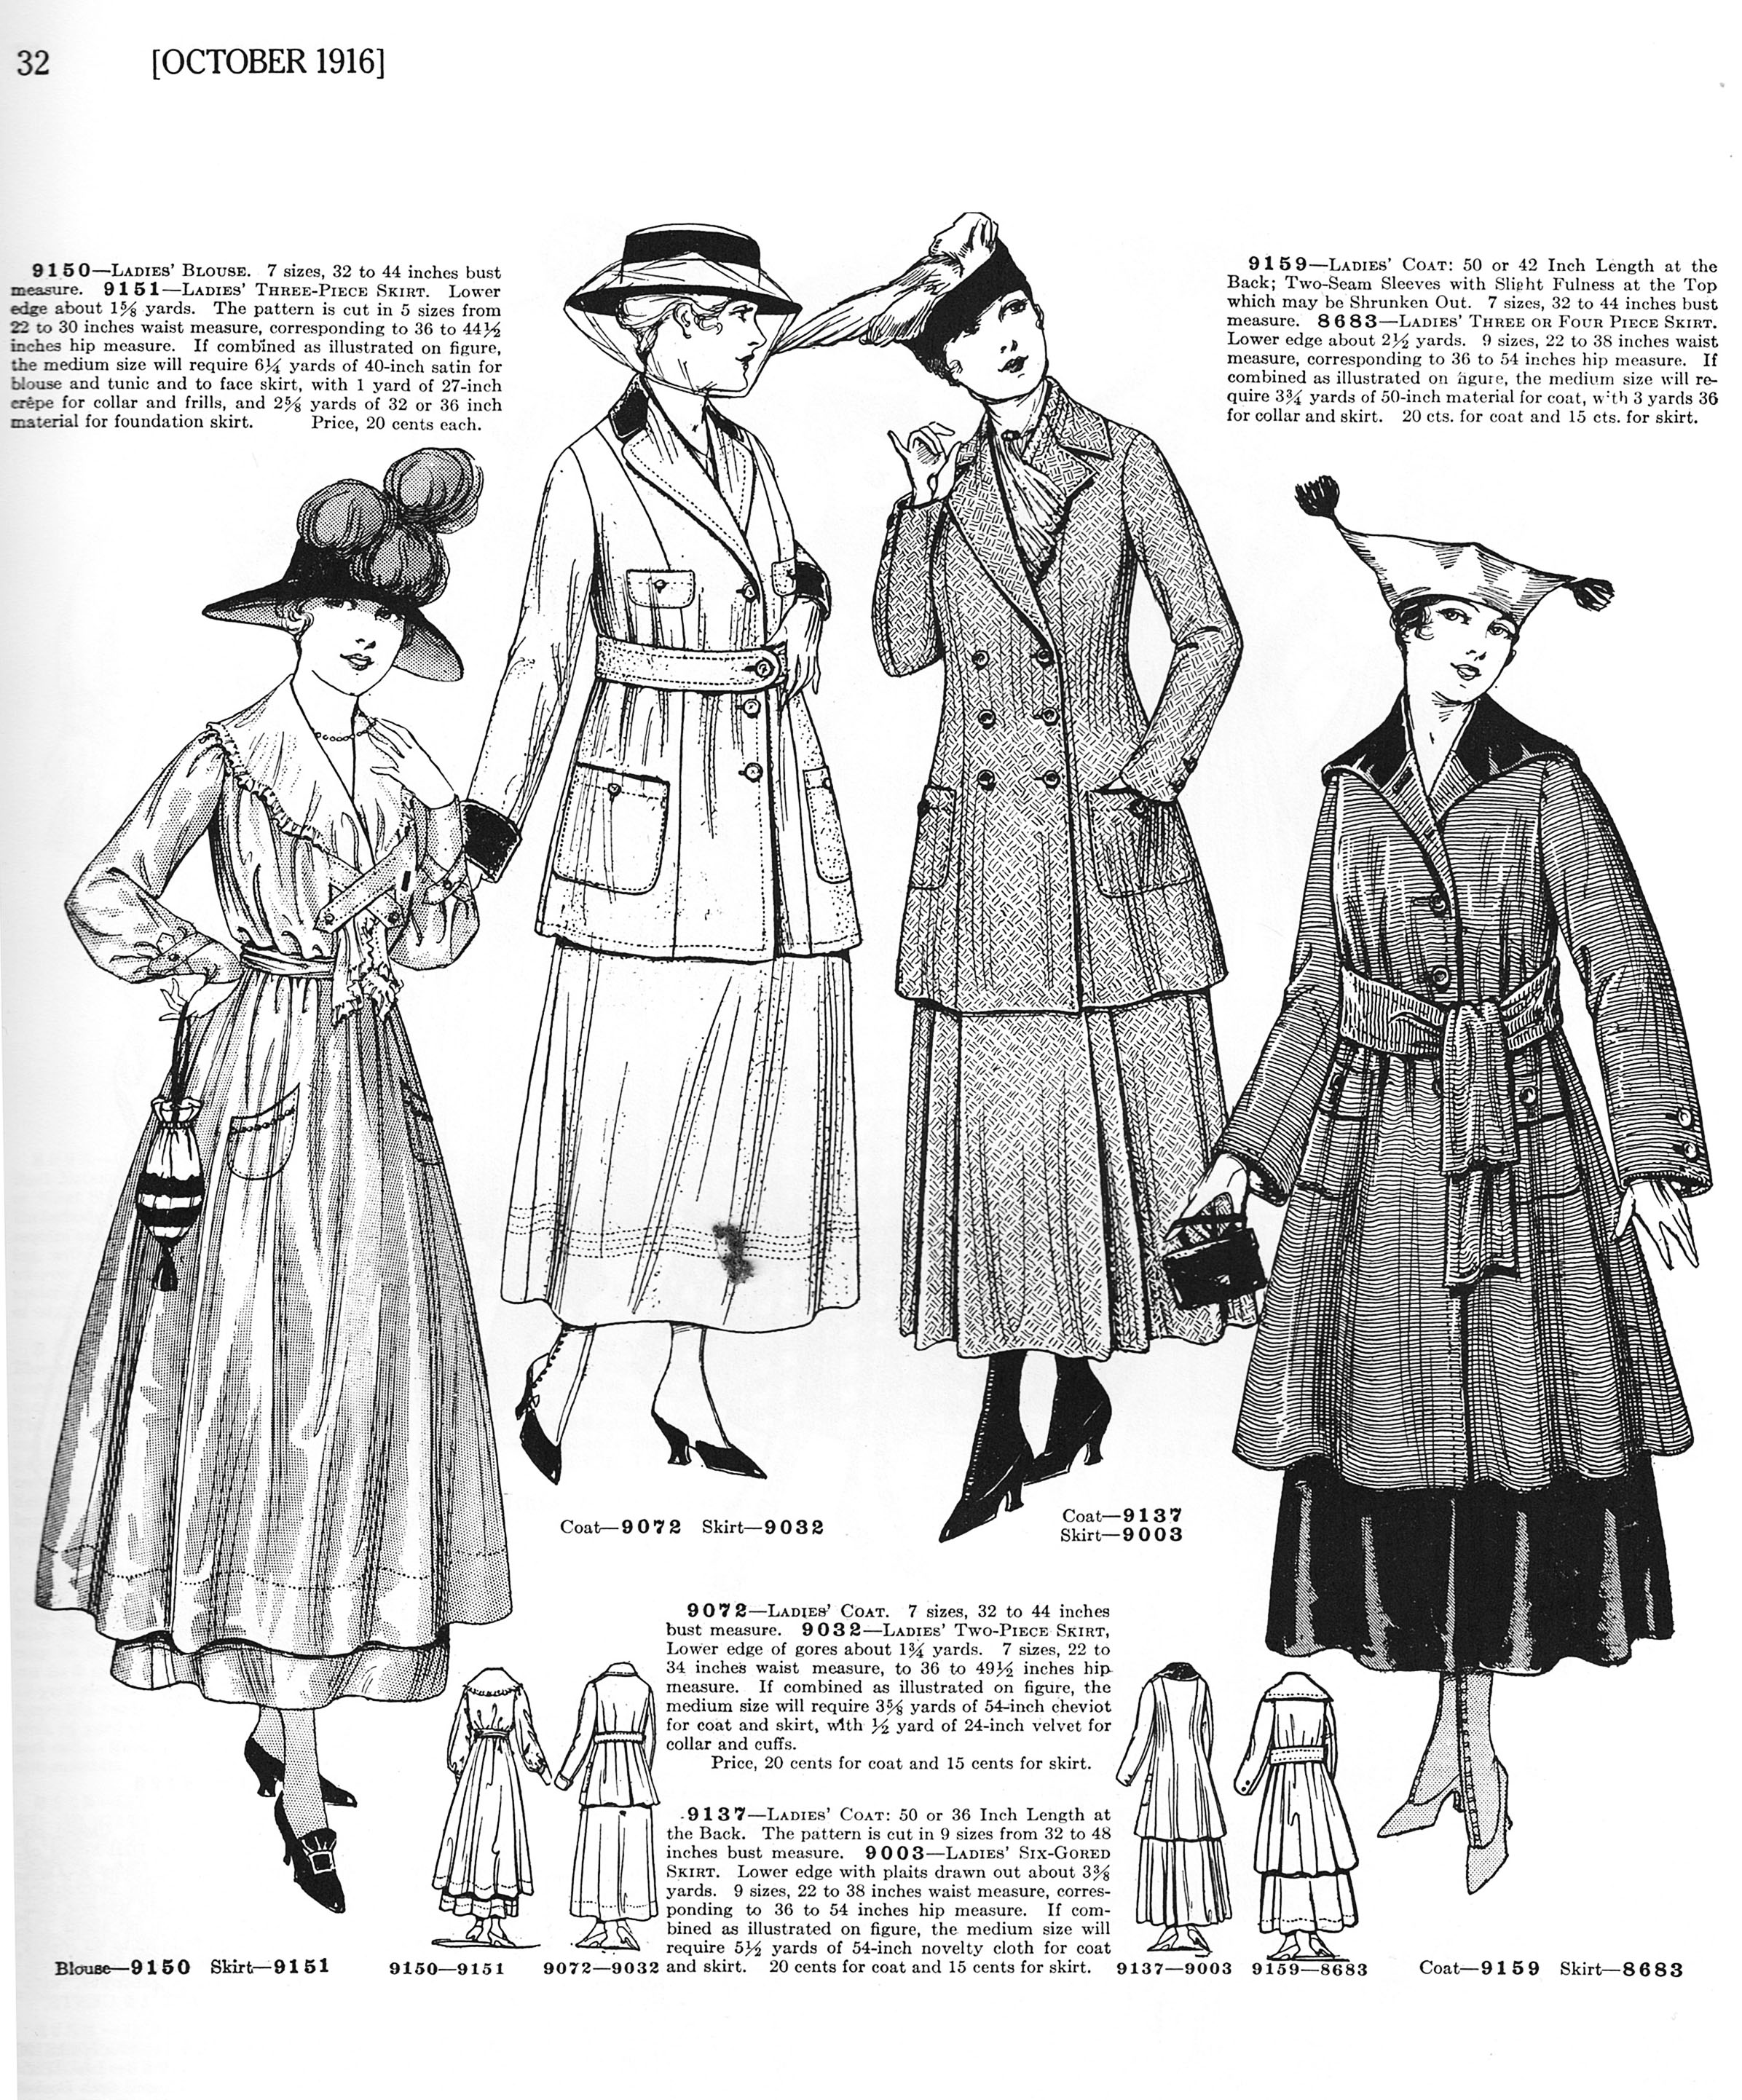 October 1916 Russell's Standard Fashions, publ. by Dover Press